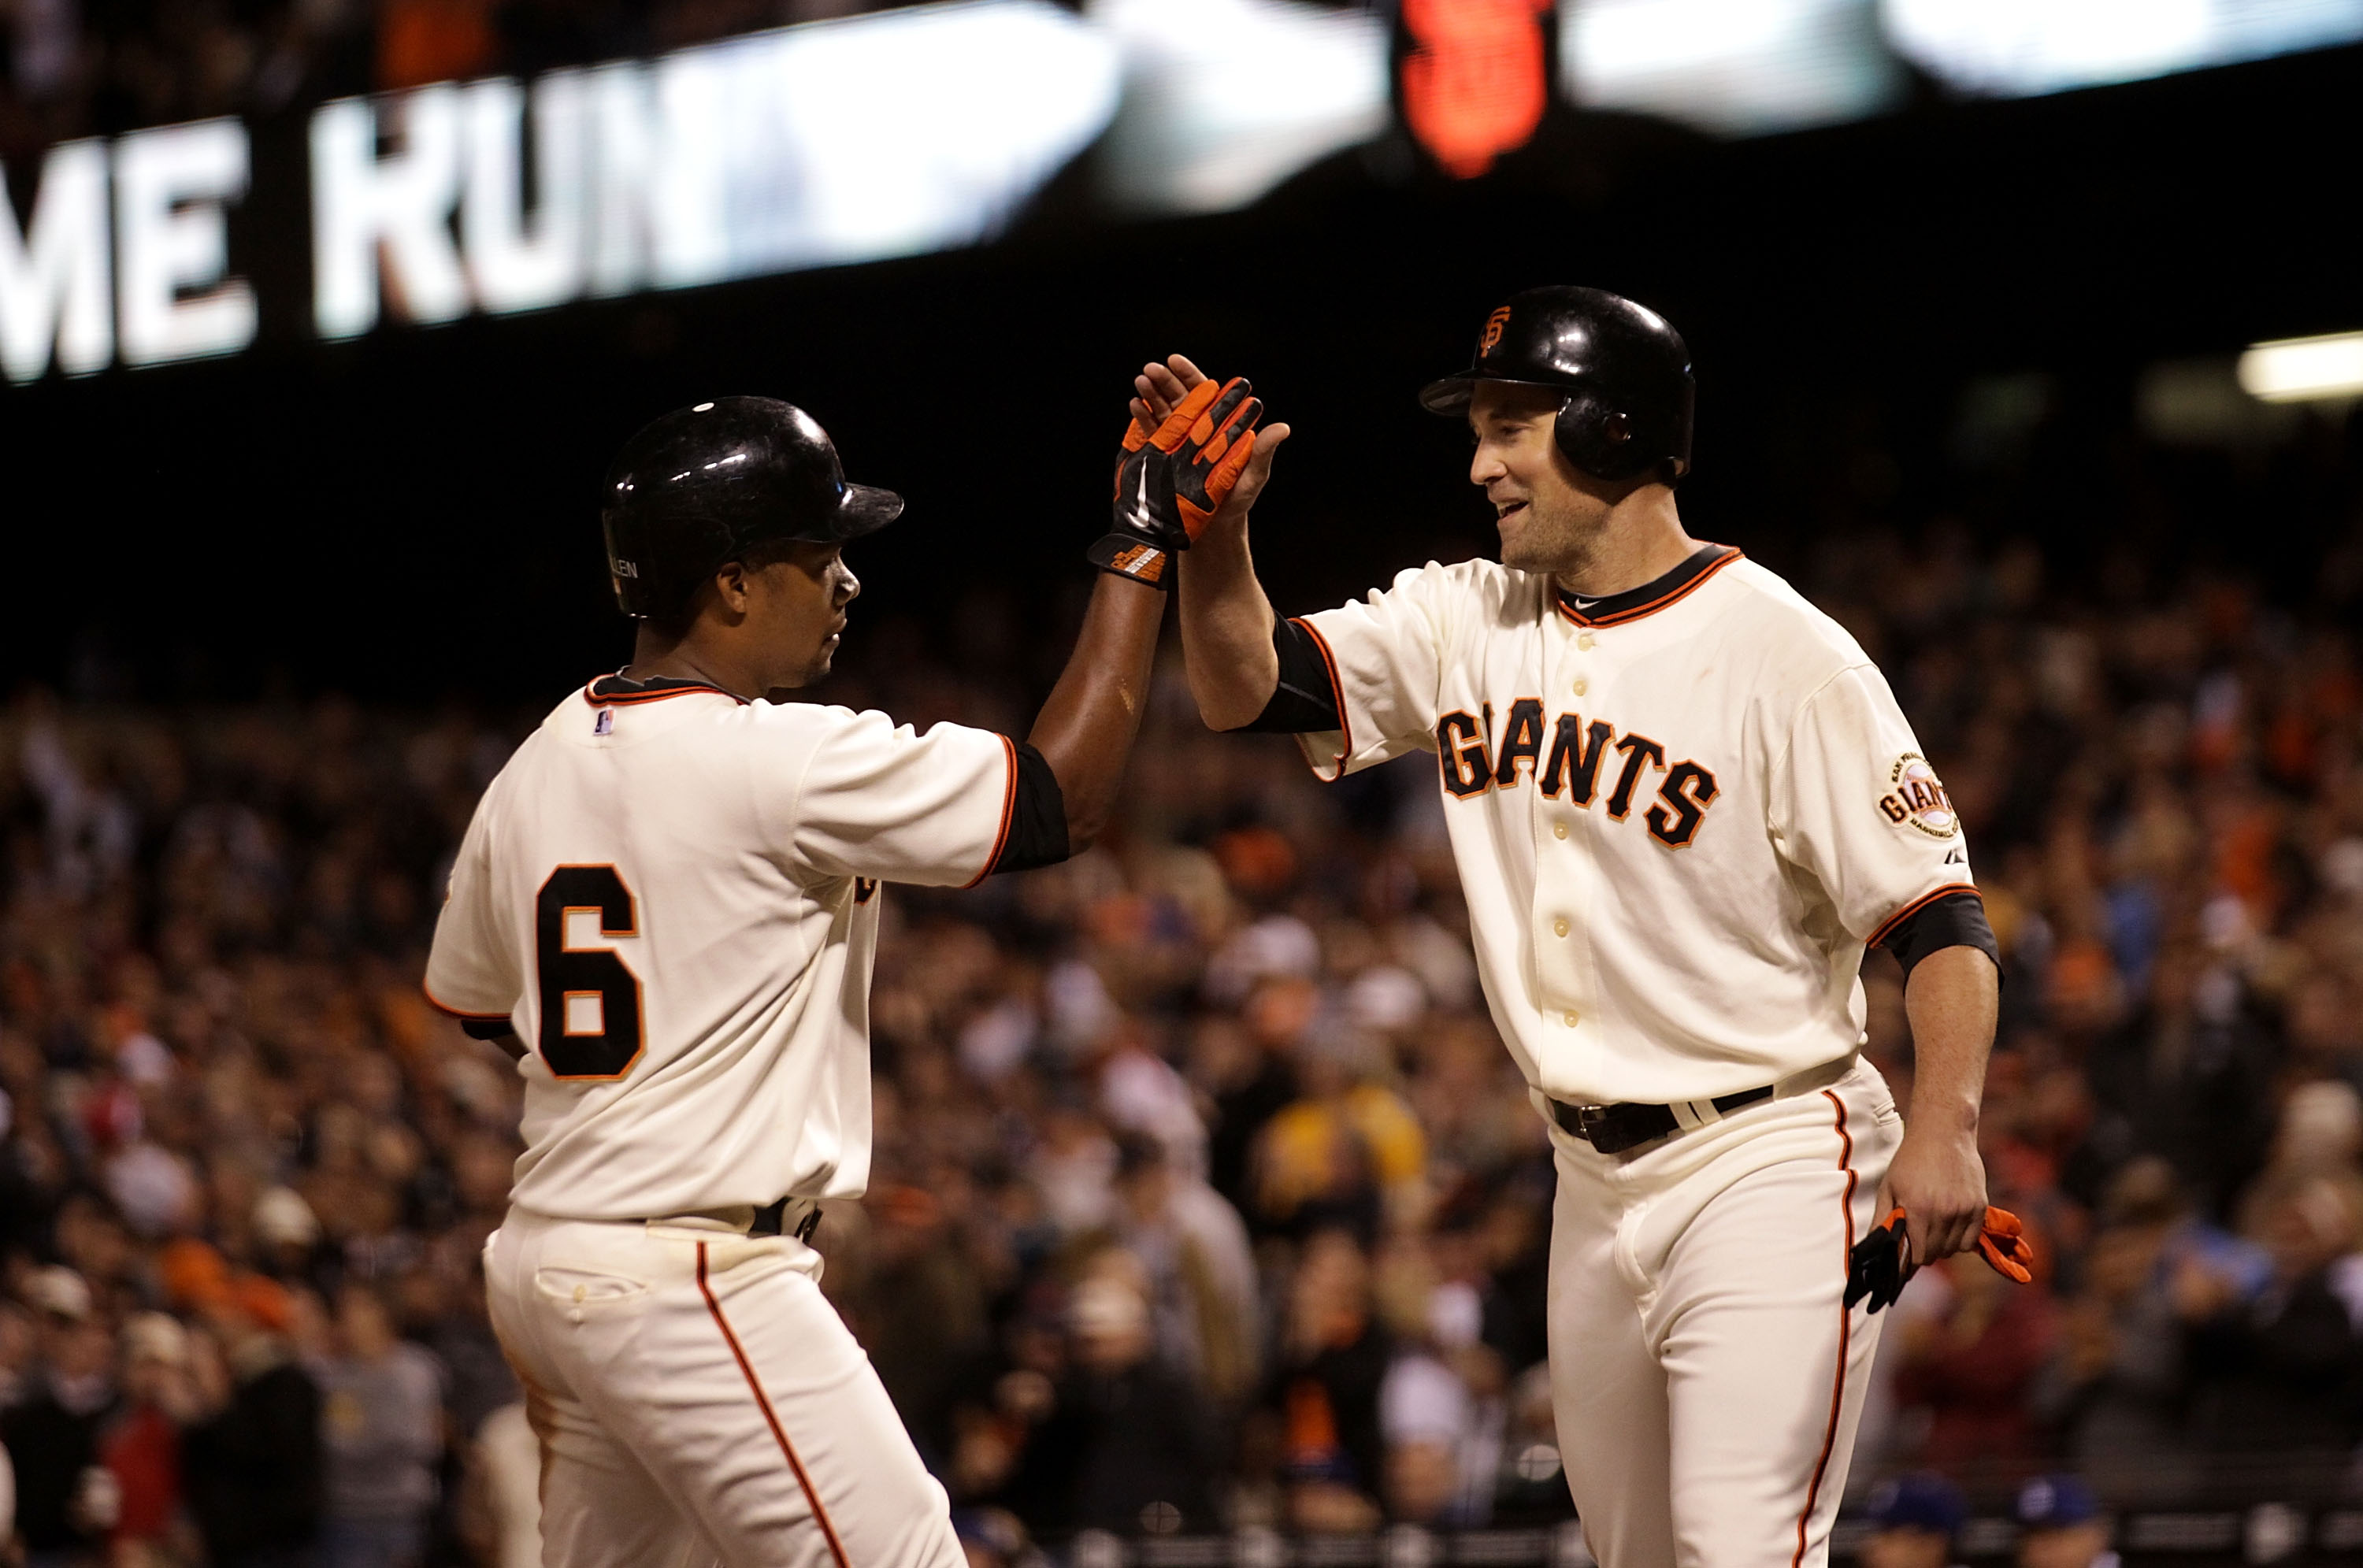 SAN FRANCISCO - SEPTEMBER 16: Jose Gullien #6 of the San Francisco Giants celebrates with Pat Burrell #9 after hitting a two run home in the fifth inning gainst the Los Angeles Dodgers during a Major League Baseball game at AT&T Park on September 16, 2010